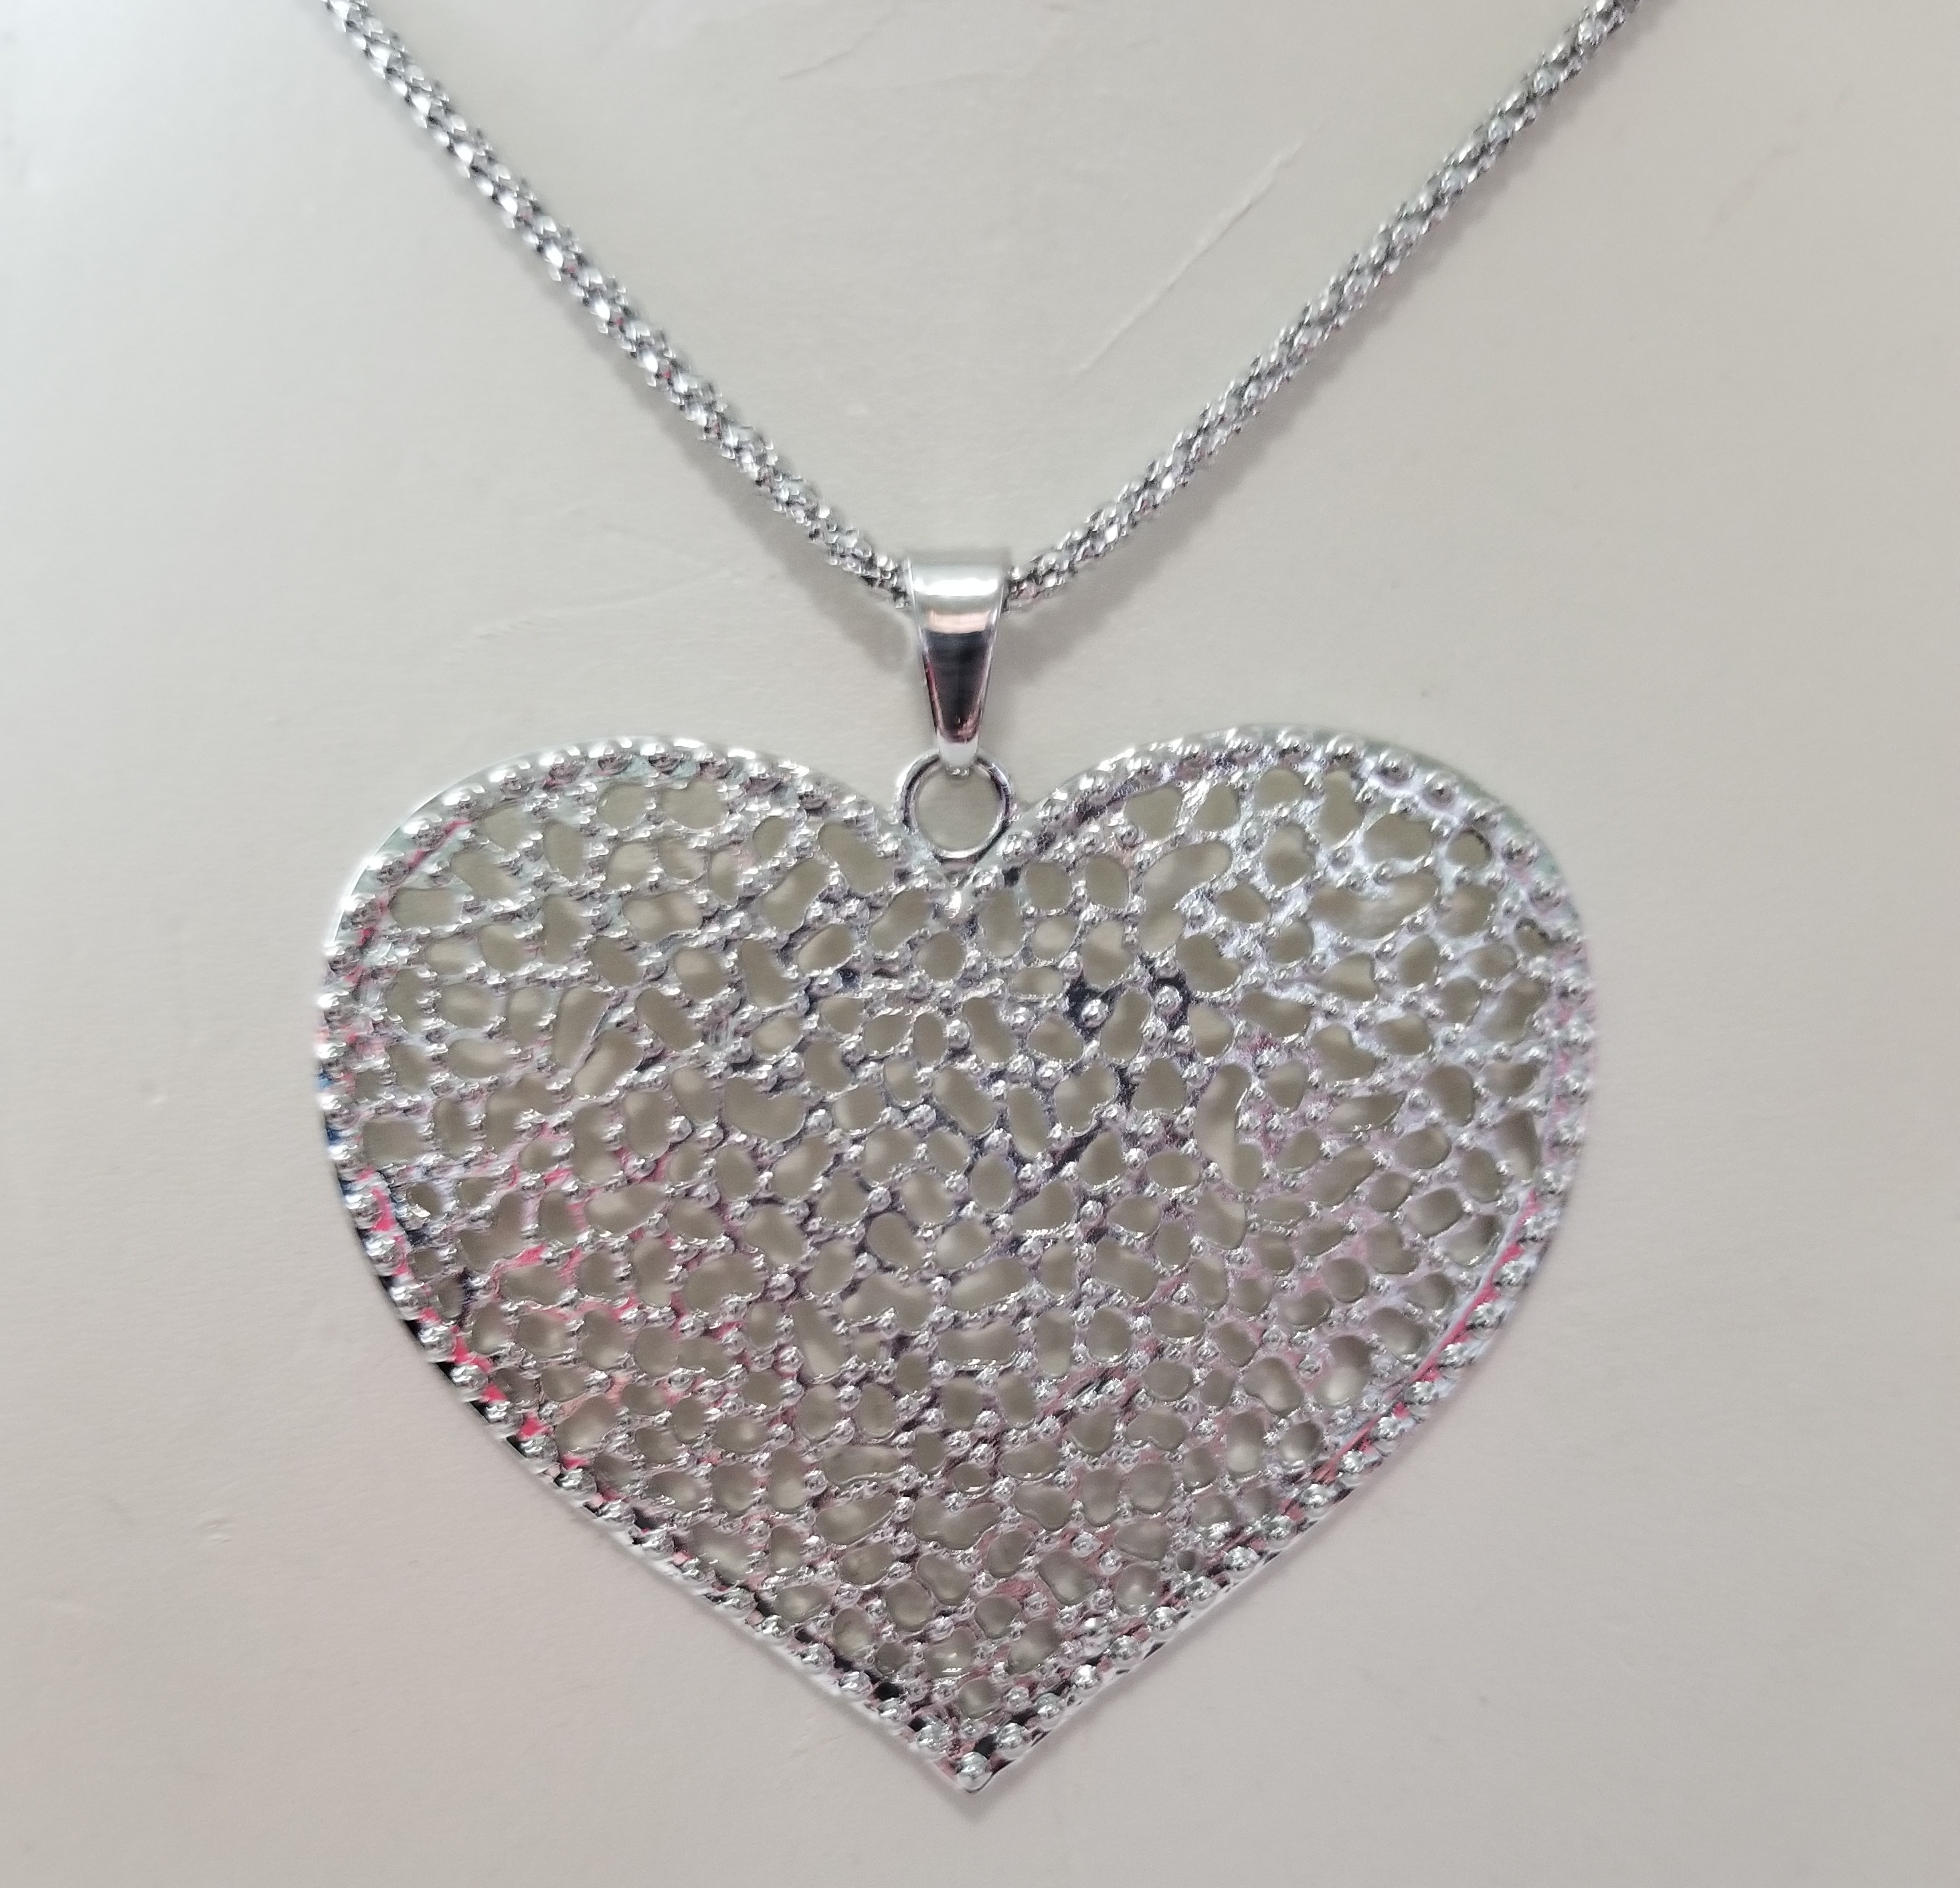 Big filigree heart pendant chain necklace 30 property room big filigree heart pendant chain necklace 30 aloadofball Image collections